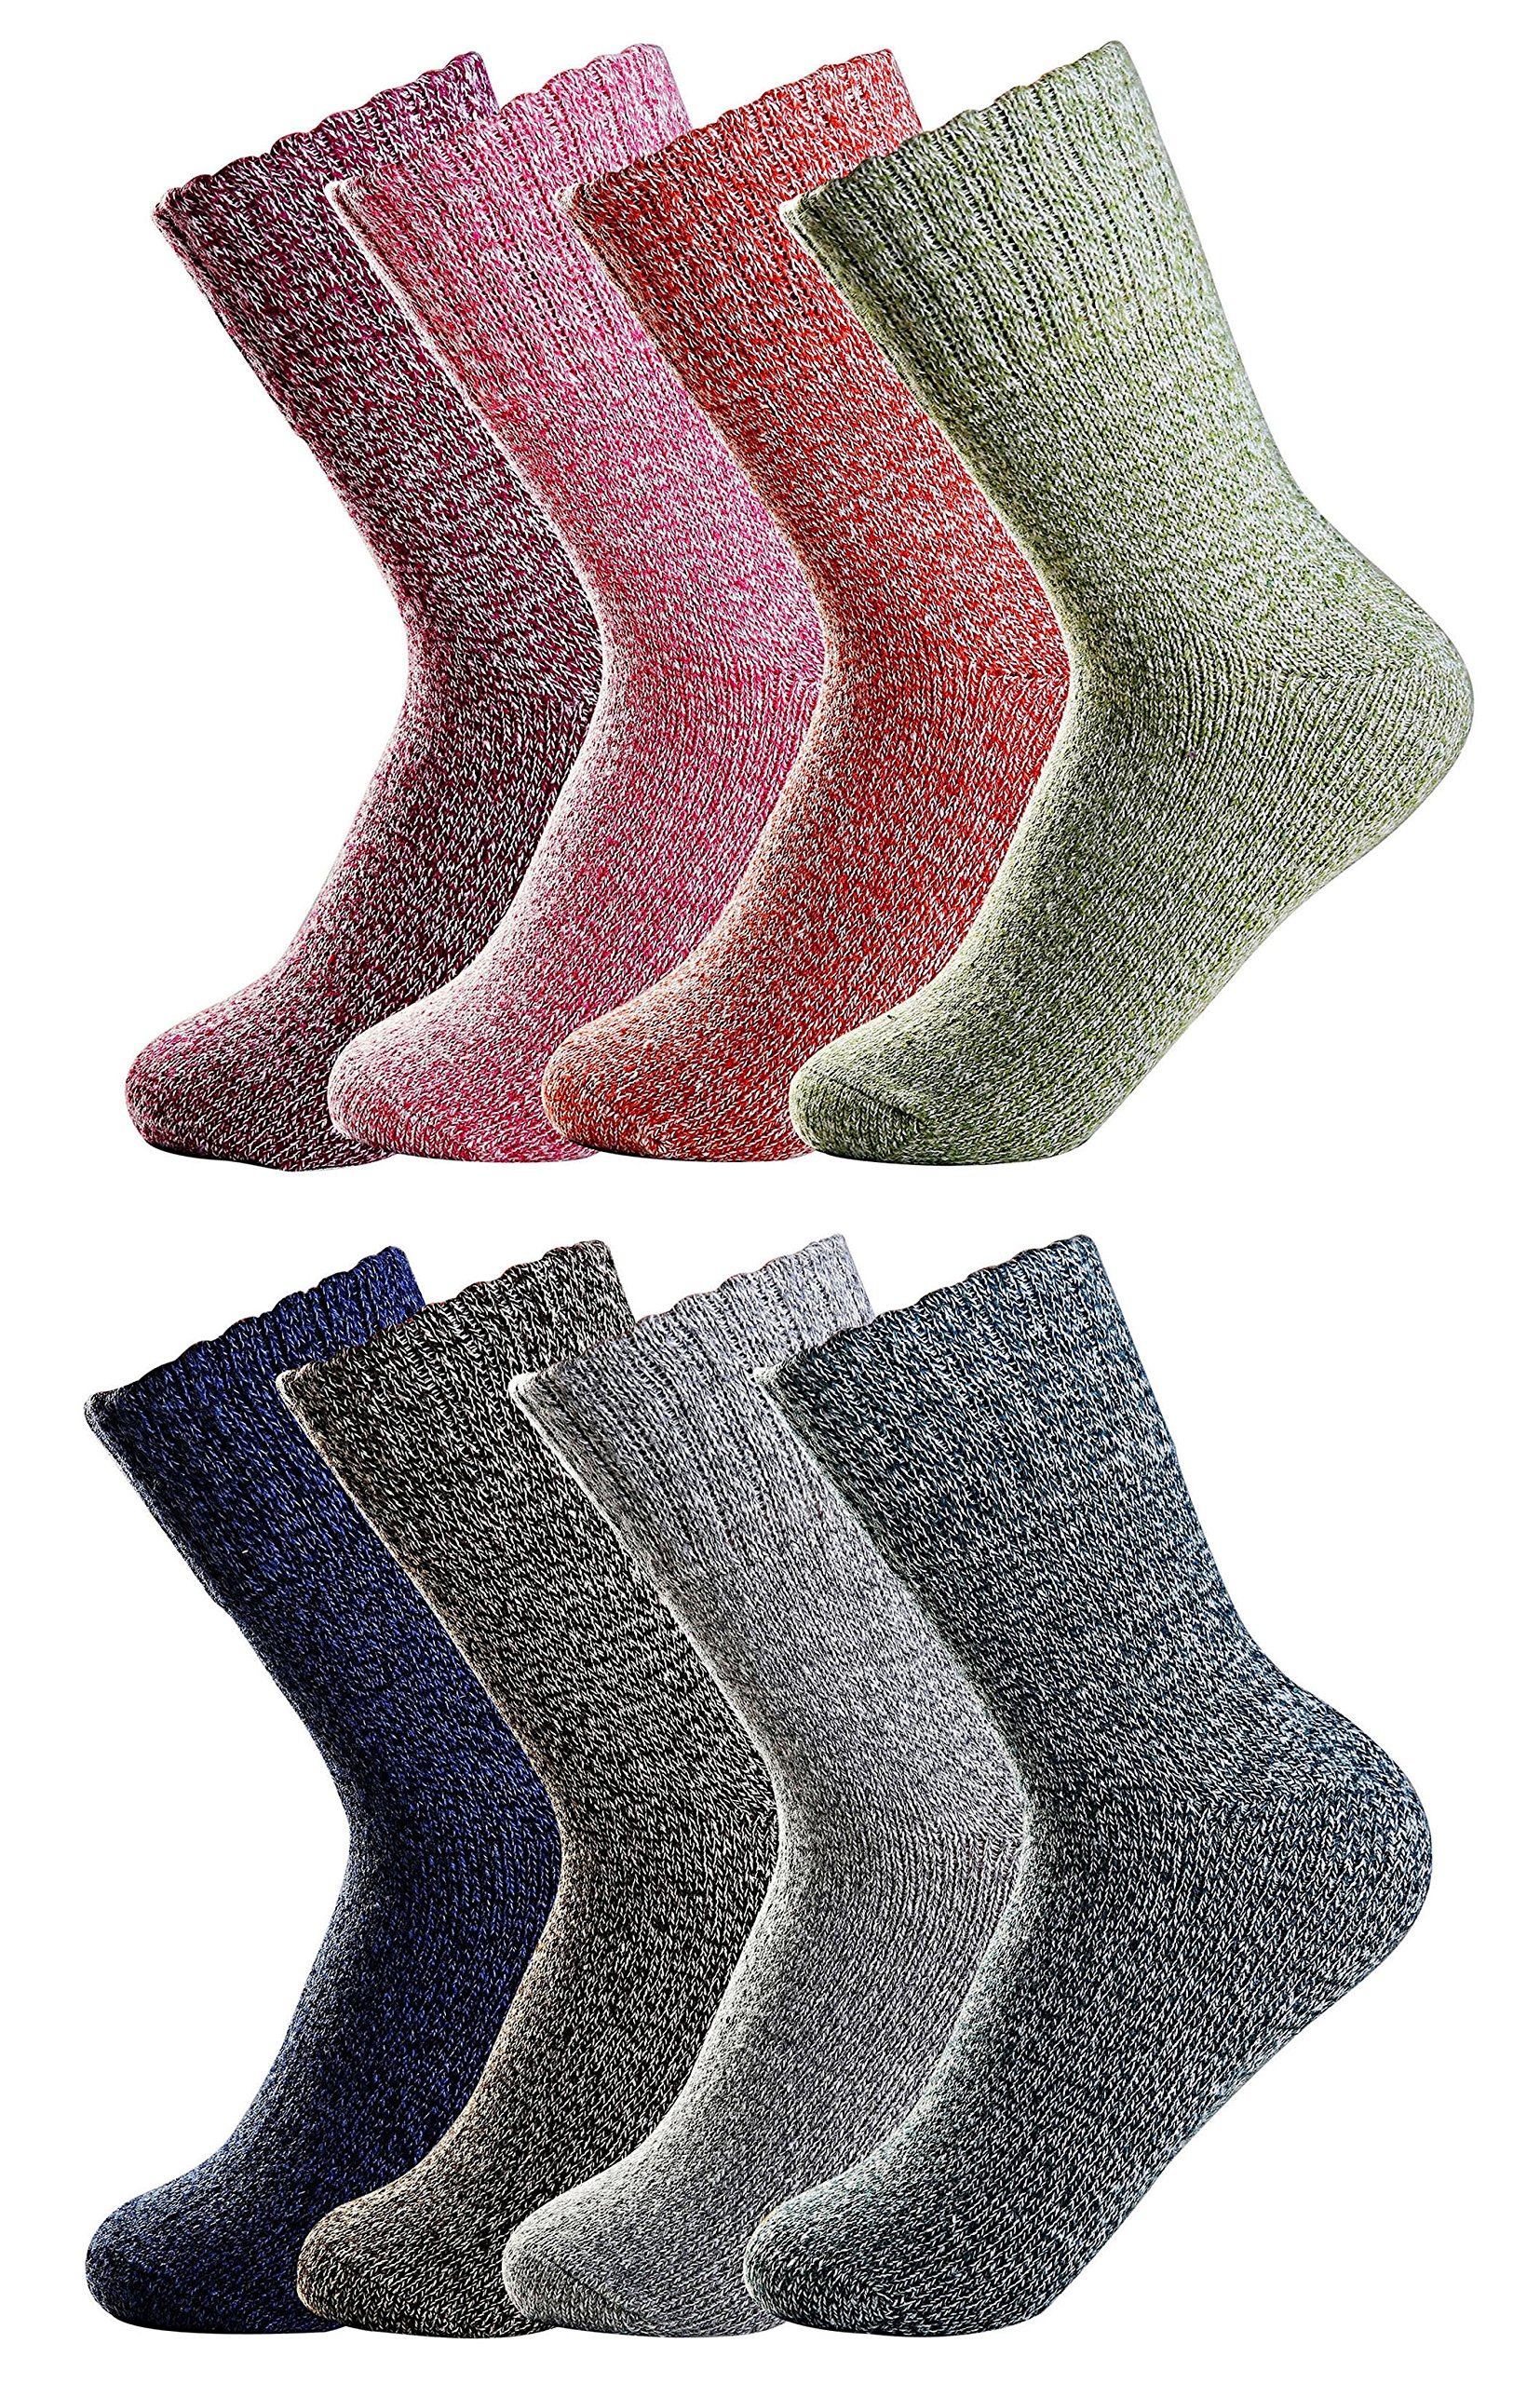 Luxina 8 Pairs Thick Wool Knitting Autumn Winter Warm Socks for Women (H: Pure Mixed Colors)